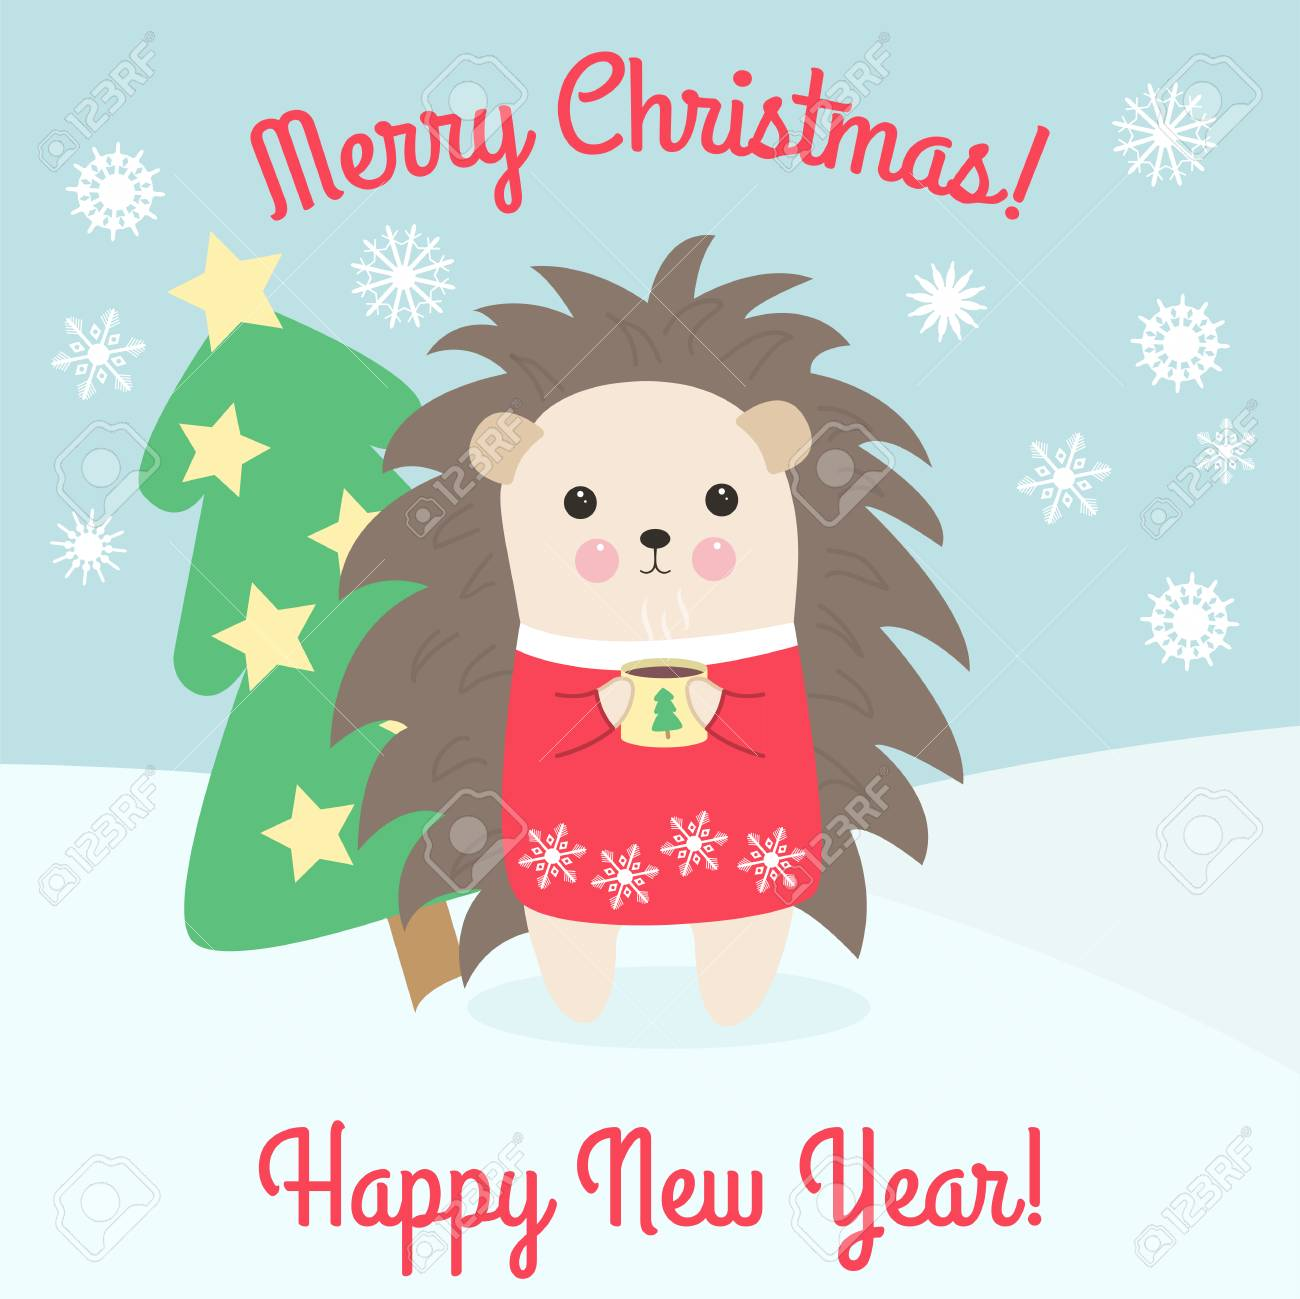 Hedgehog Christmas Jumper.Merry Christmas And Happy New Year Cute Hedgehog In A Red Christmas